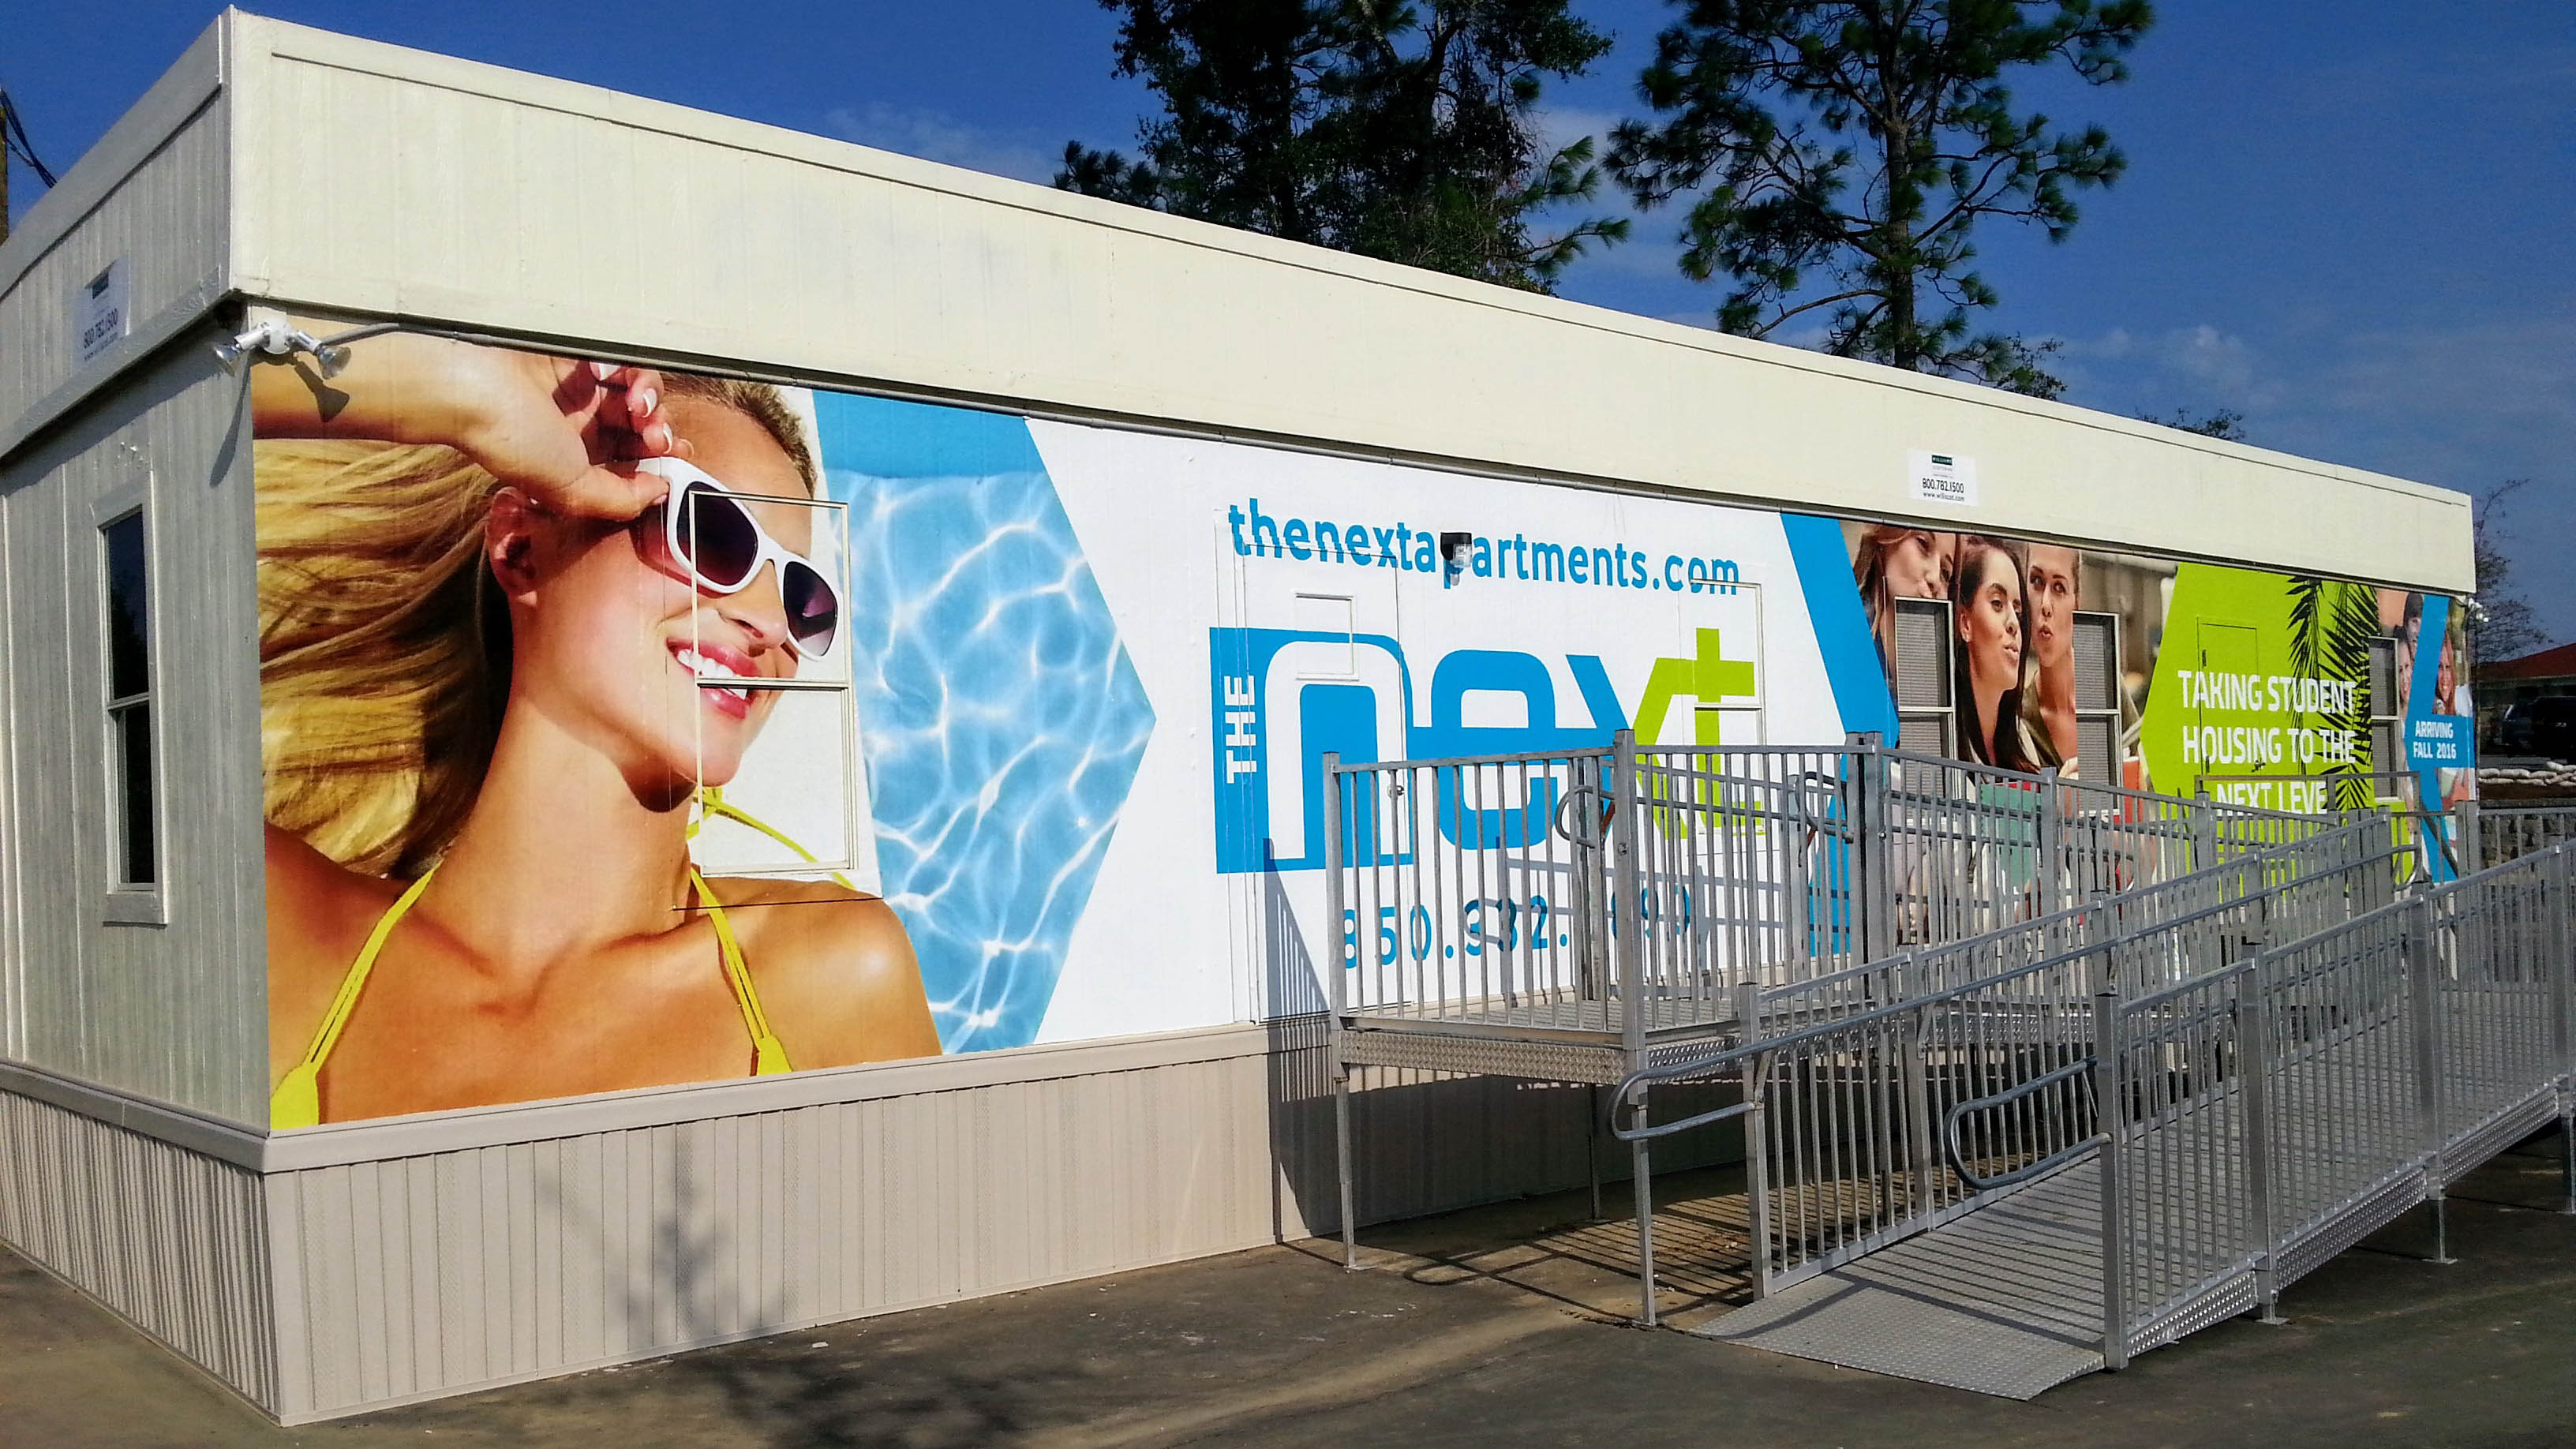 Wall wraps on building exterior - signgeek Wall Wraps & Environmental Graphics